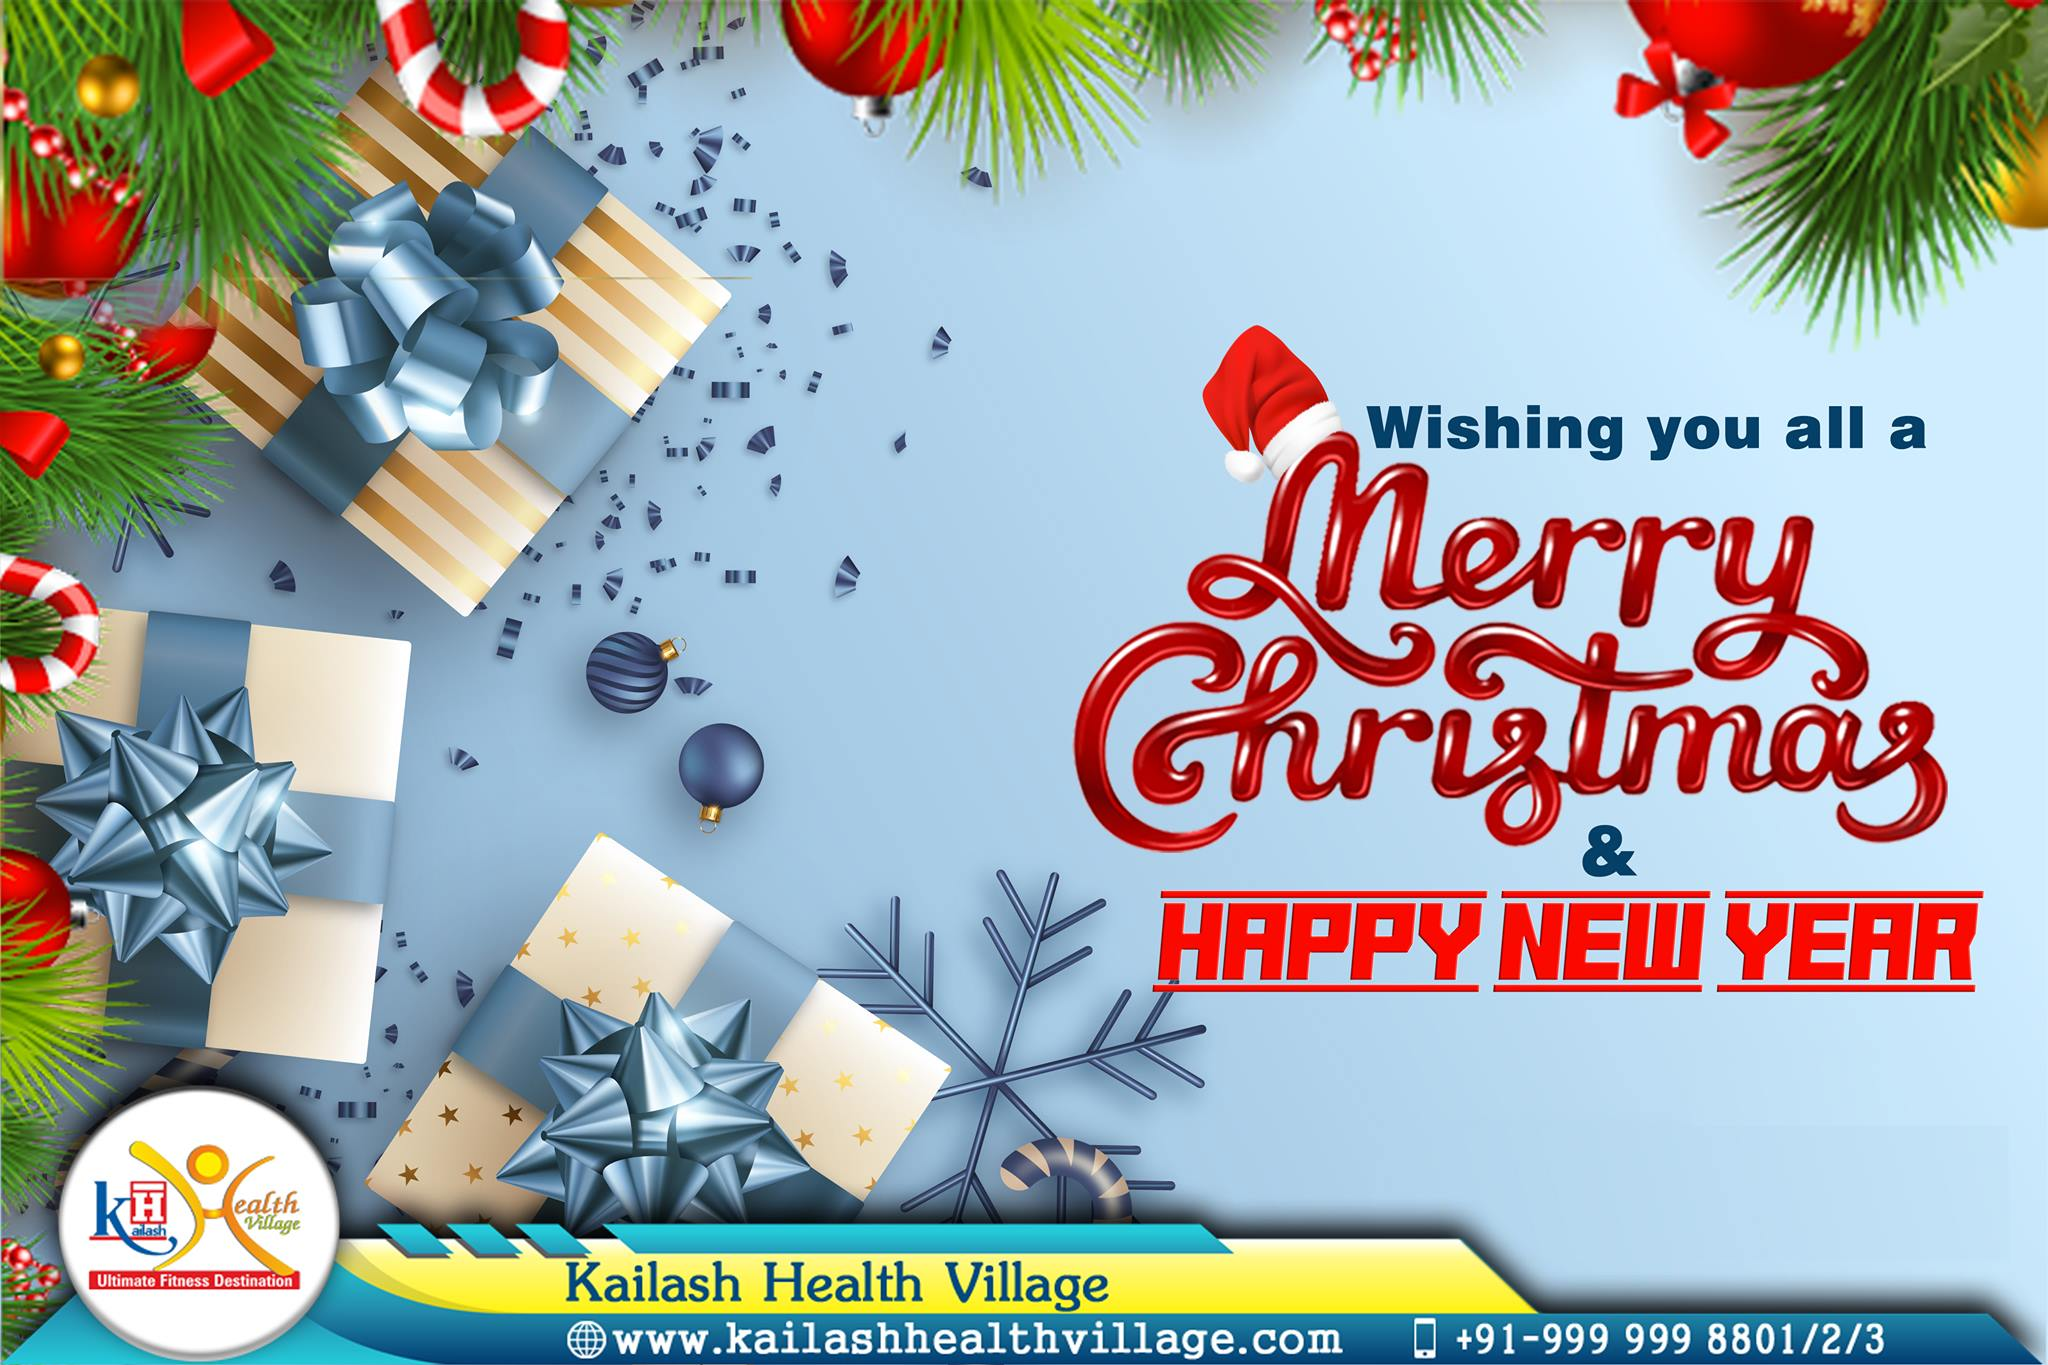 Let your Health shine bright & Life be full of delight. Kailash Health Village wishes you all a Merry Christmas & Happy New Year!